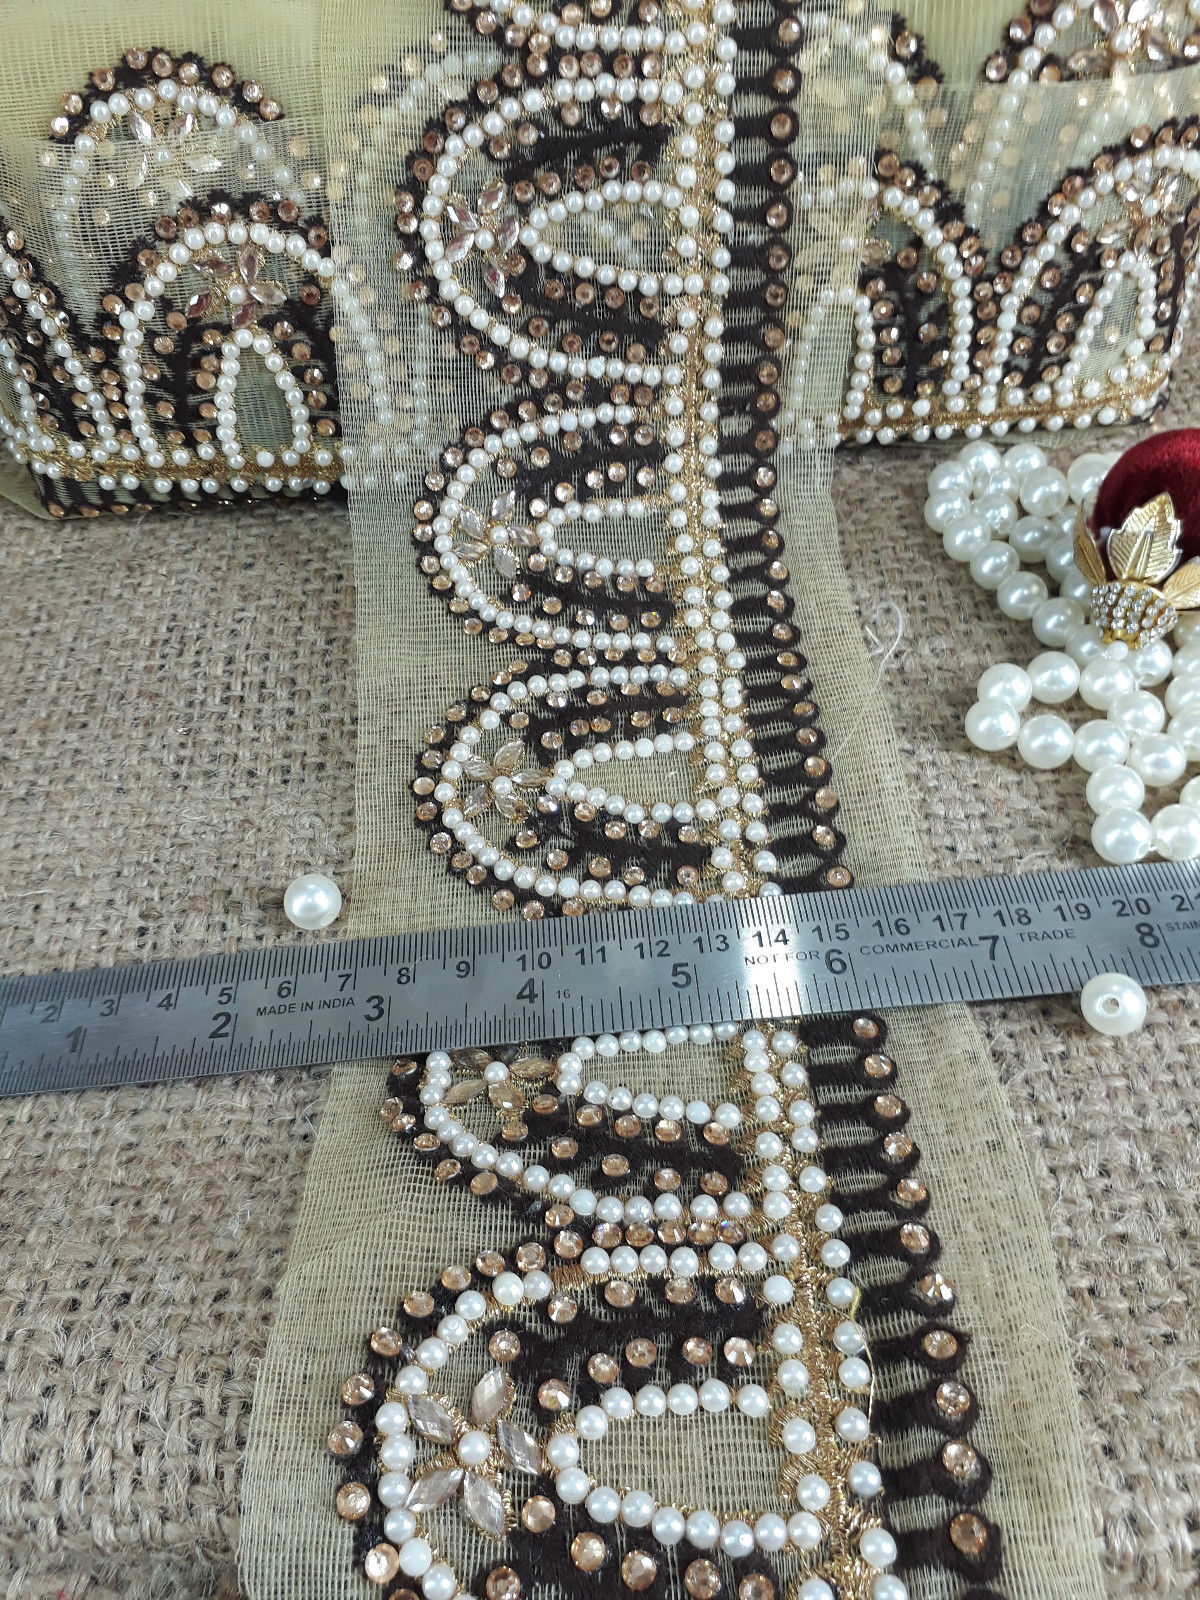 black lace applique trim gold lace applique Beige Gold, Off White, Brown Embroidered, Stone, Pearl Net Less than 4 inch